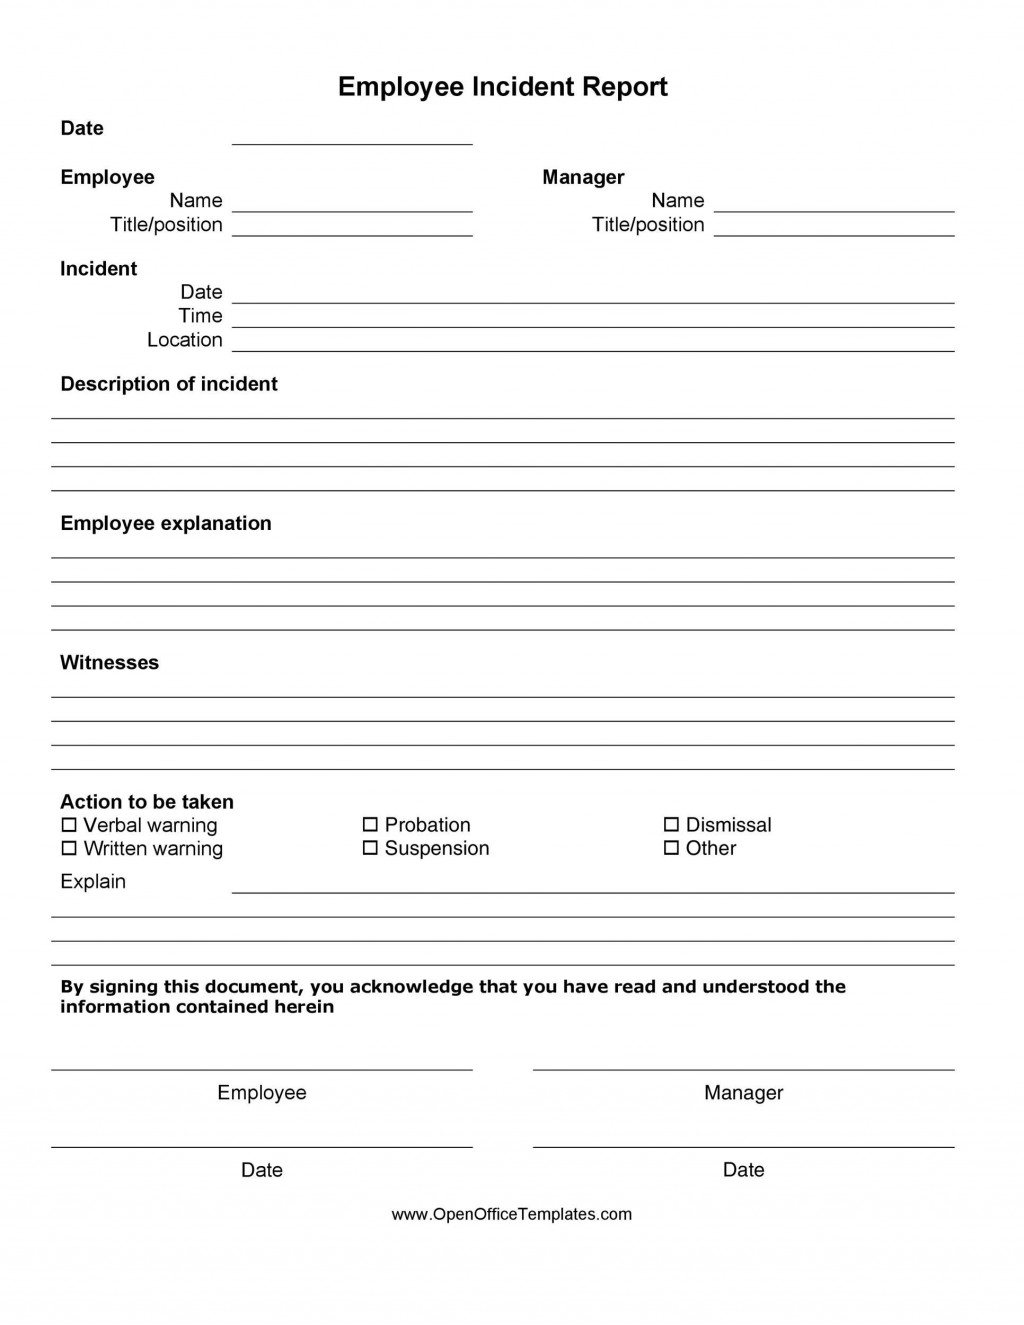 005 Stupendou Accident Report Form Template Inspiration  Templates Free Ireland HseLarge